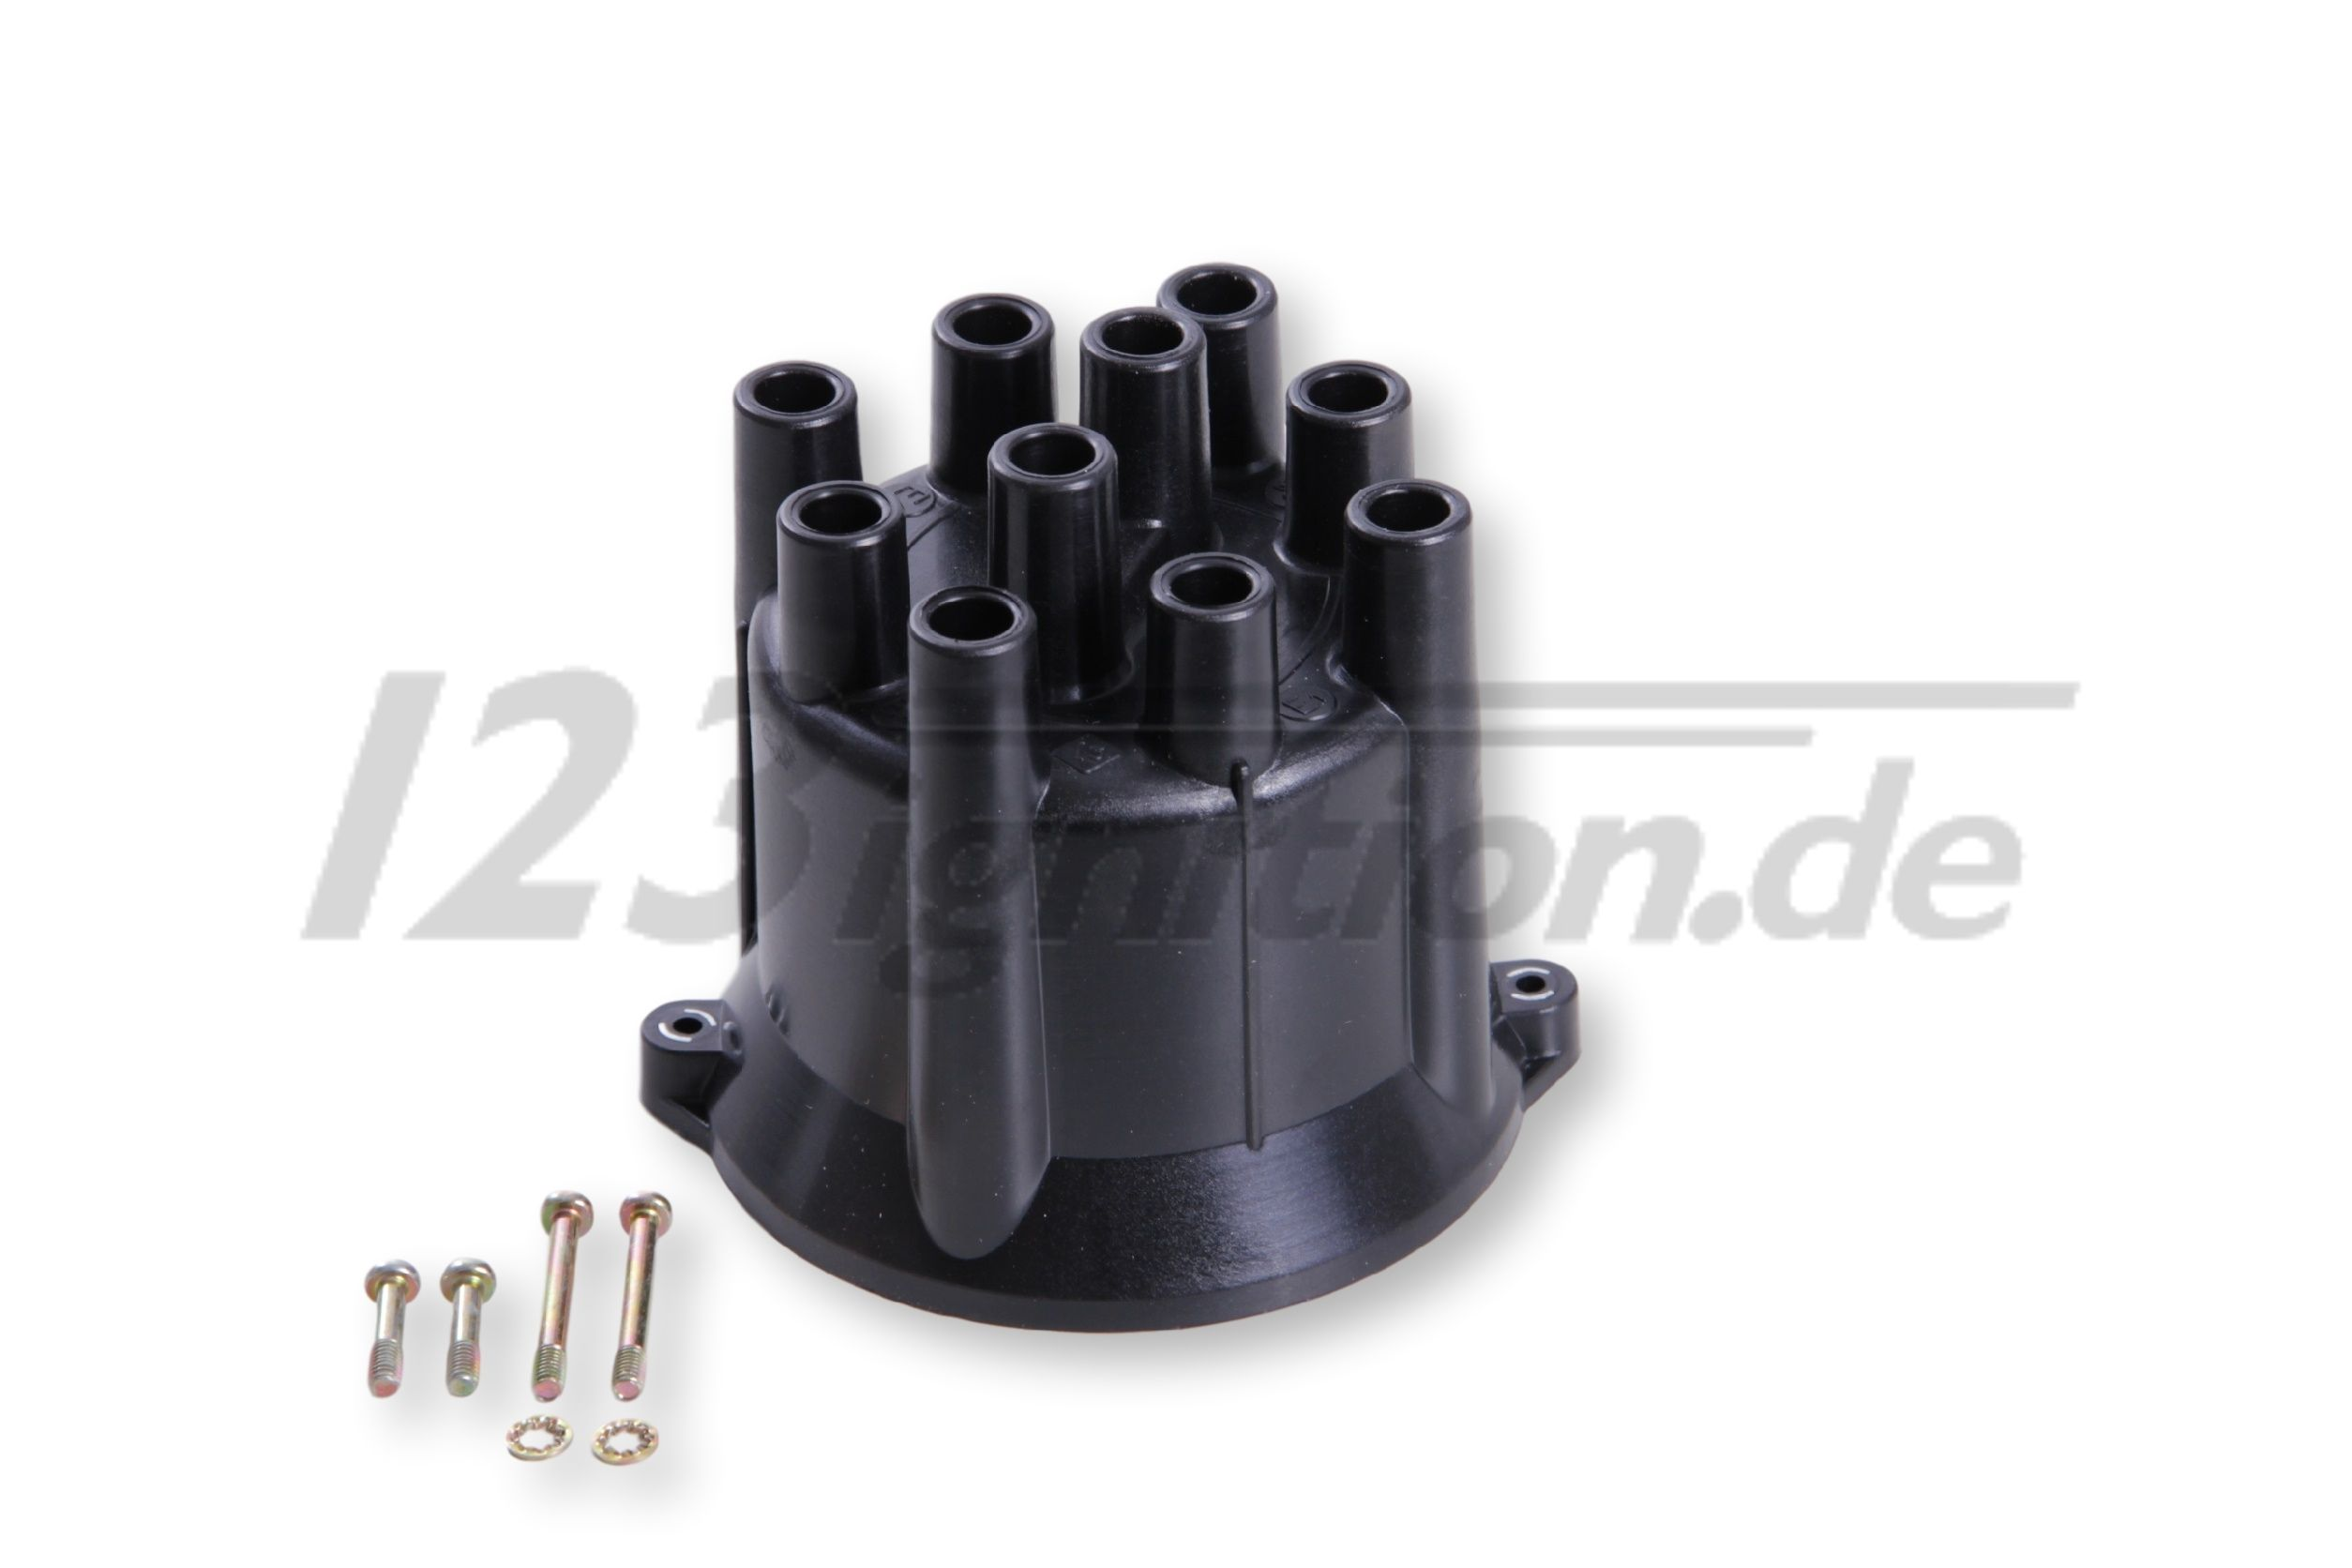 Distributor Cap 4 Cylinder Double Twin Ignition 123 Ignition